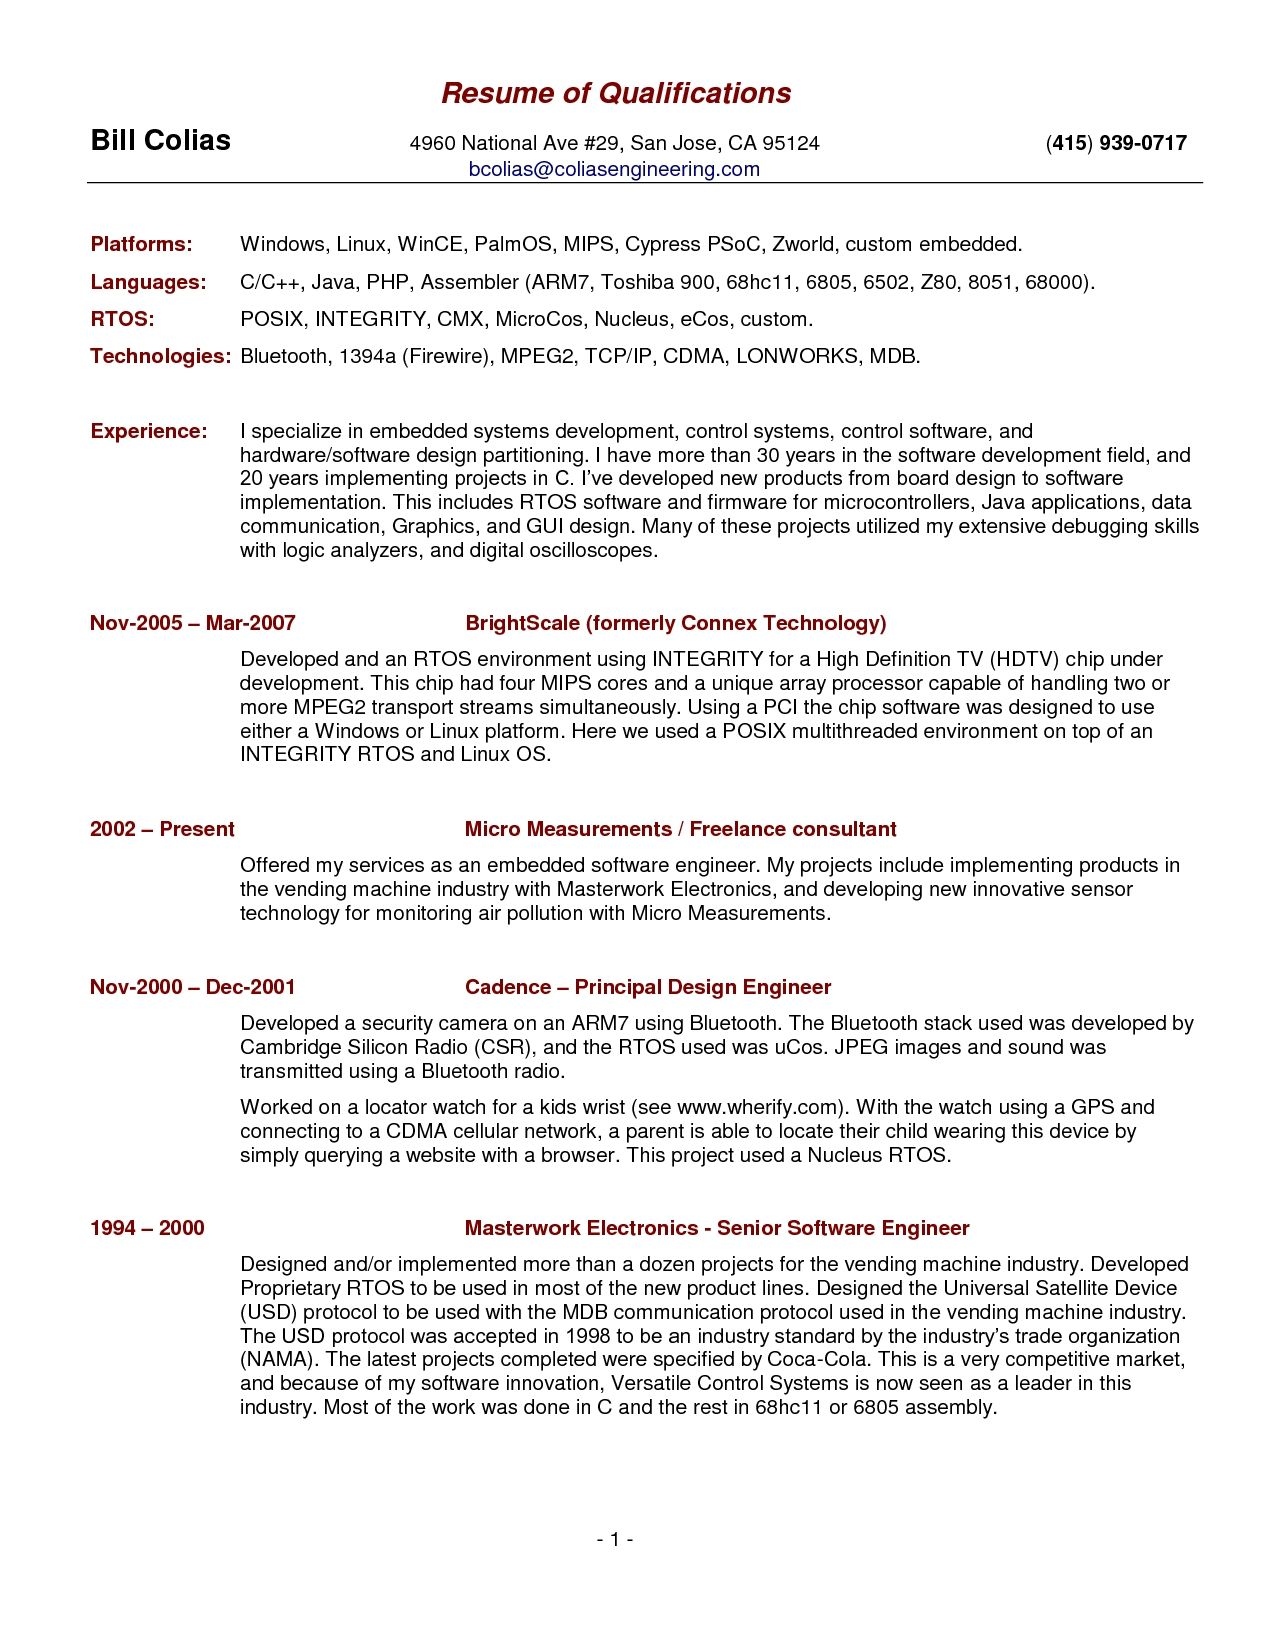 job resume skills examples example of qualifications for resumes - Resume Communication Skills Examples